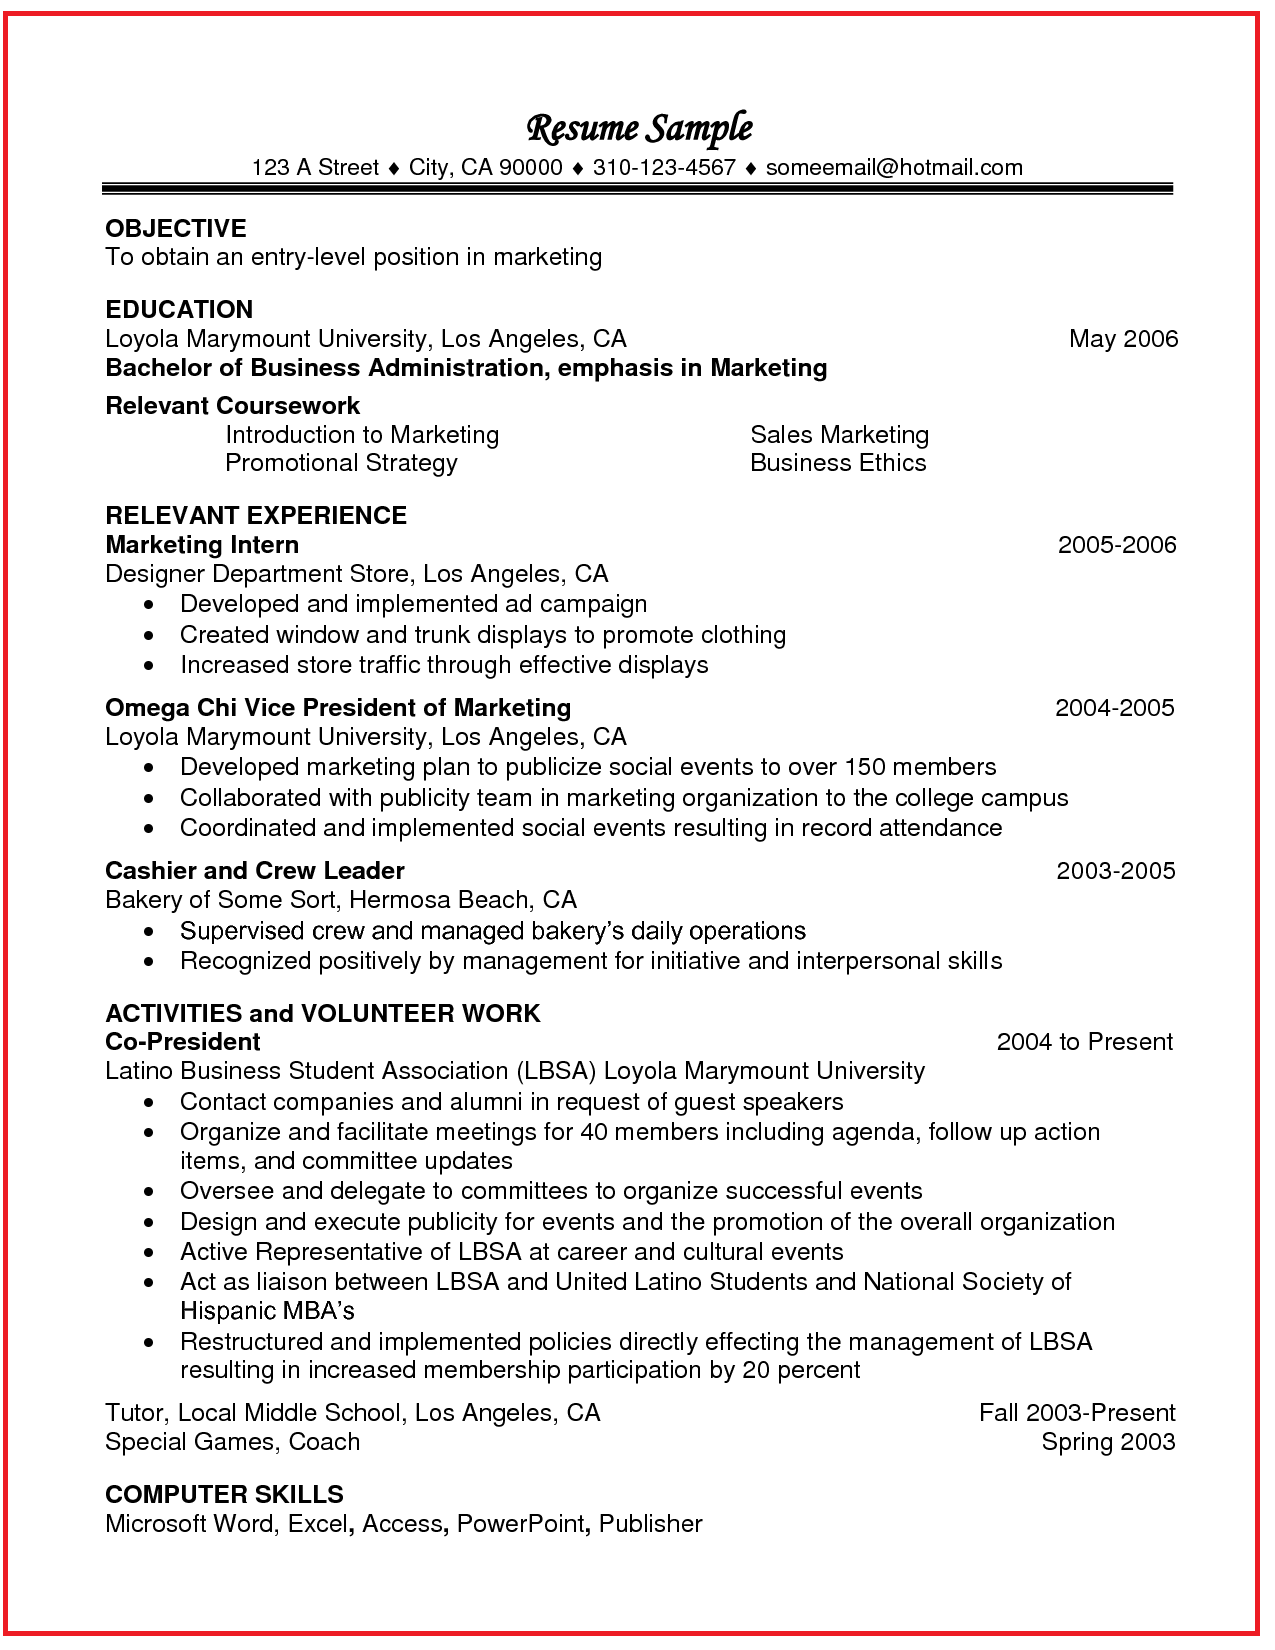 list of relevant coursework resume example